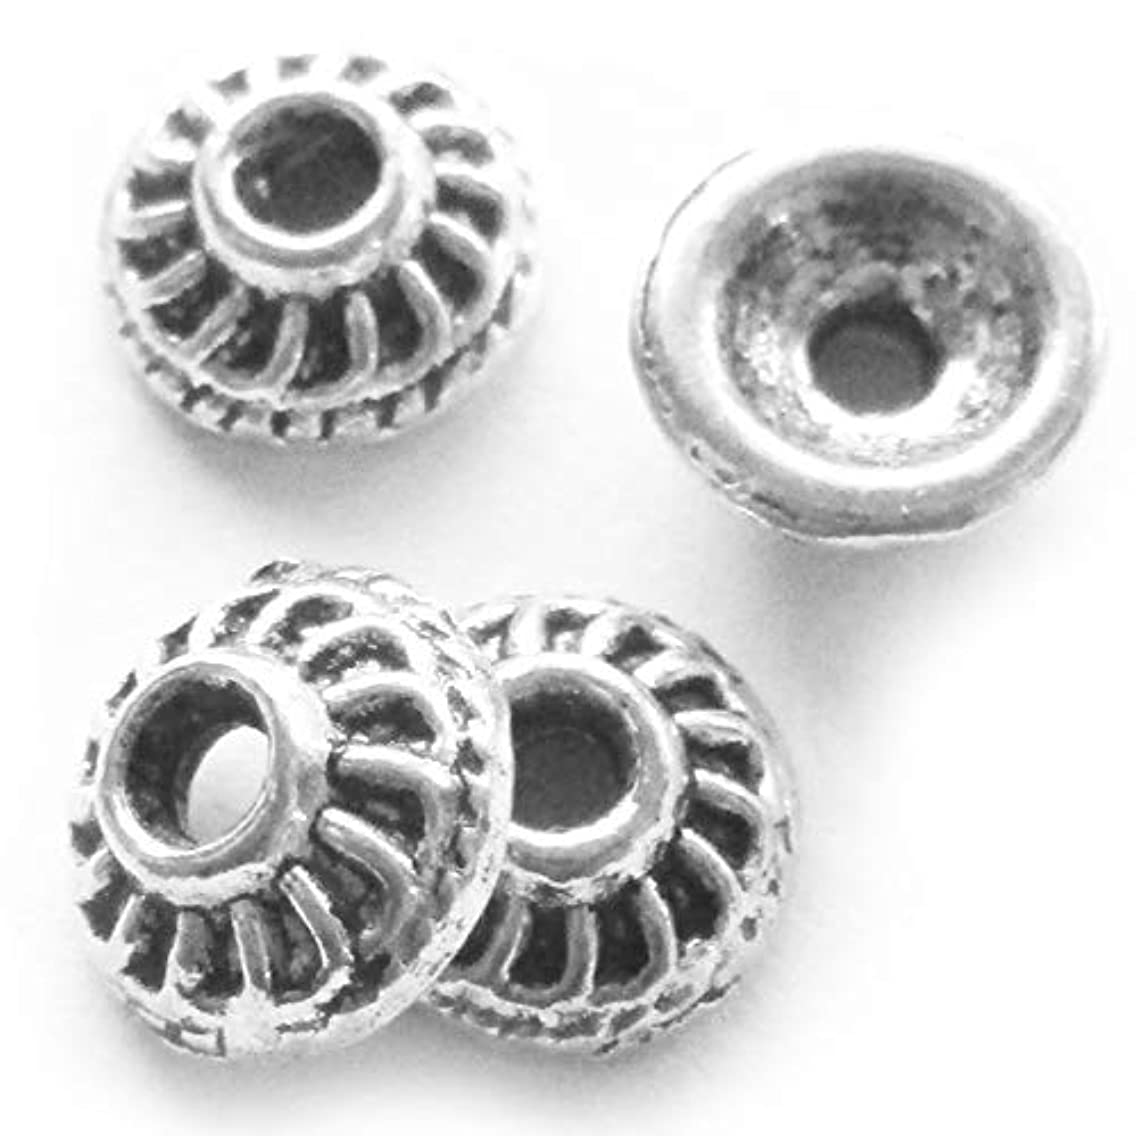 Heather's cf 100 Pieces Silver Tone Smooth Beads Caps Findings (Fit 6-8mm Round Beads) Jewelry Making